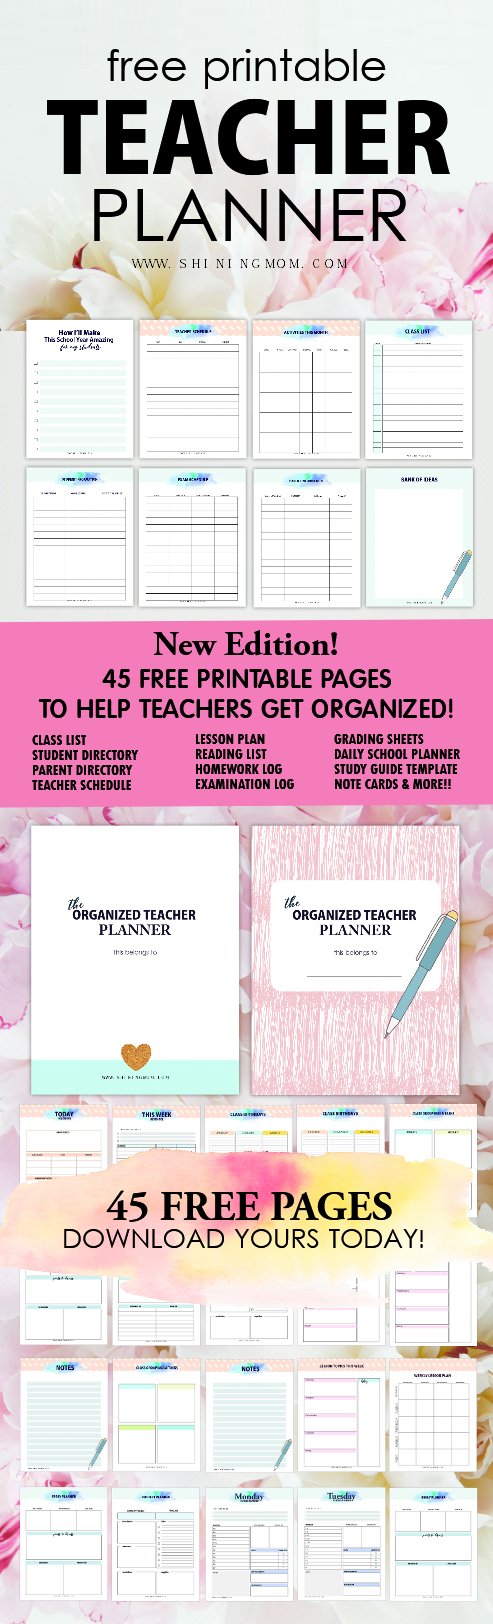 graphic about Free Printable Organizing Sheets named Cost-free Printable Trainer Planner: 45+ Faculty Arranging Templates!